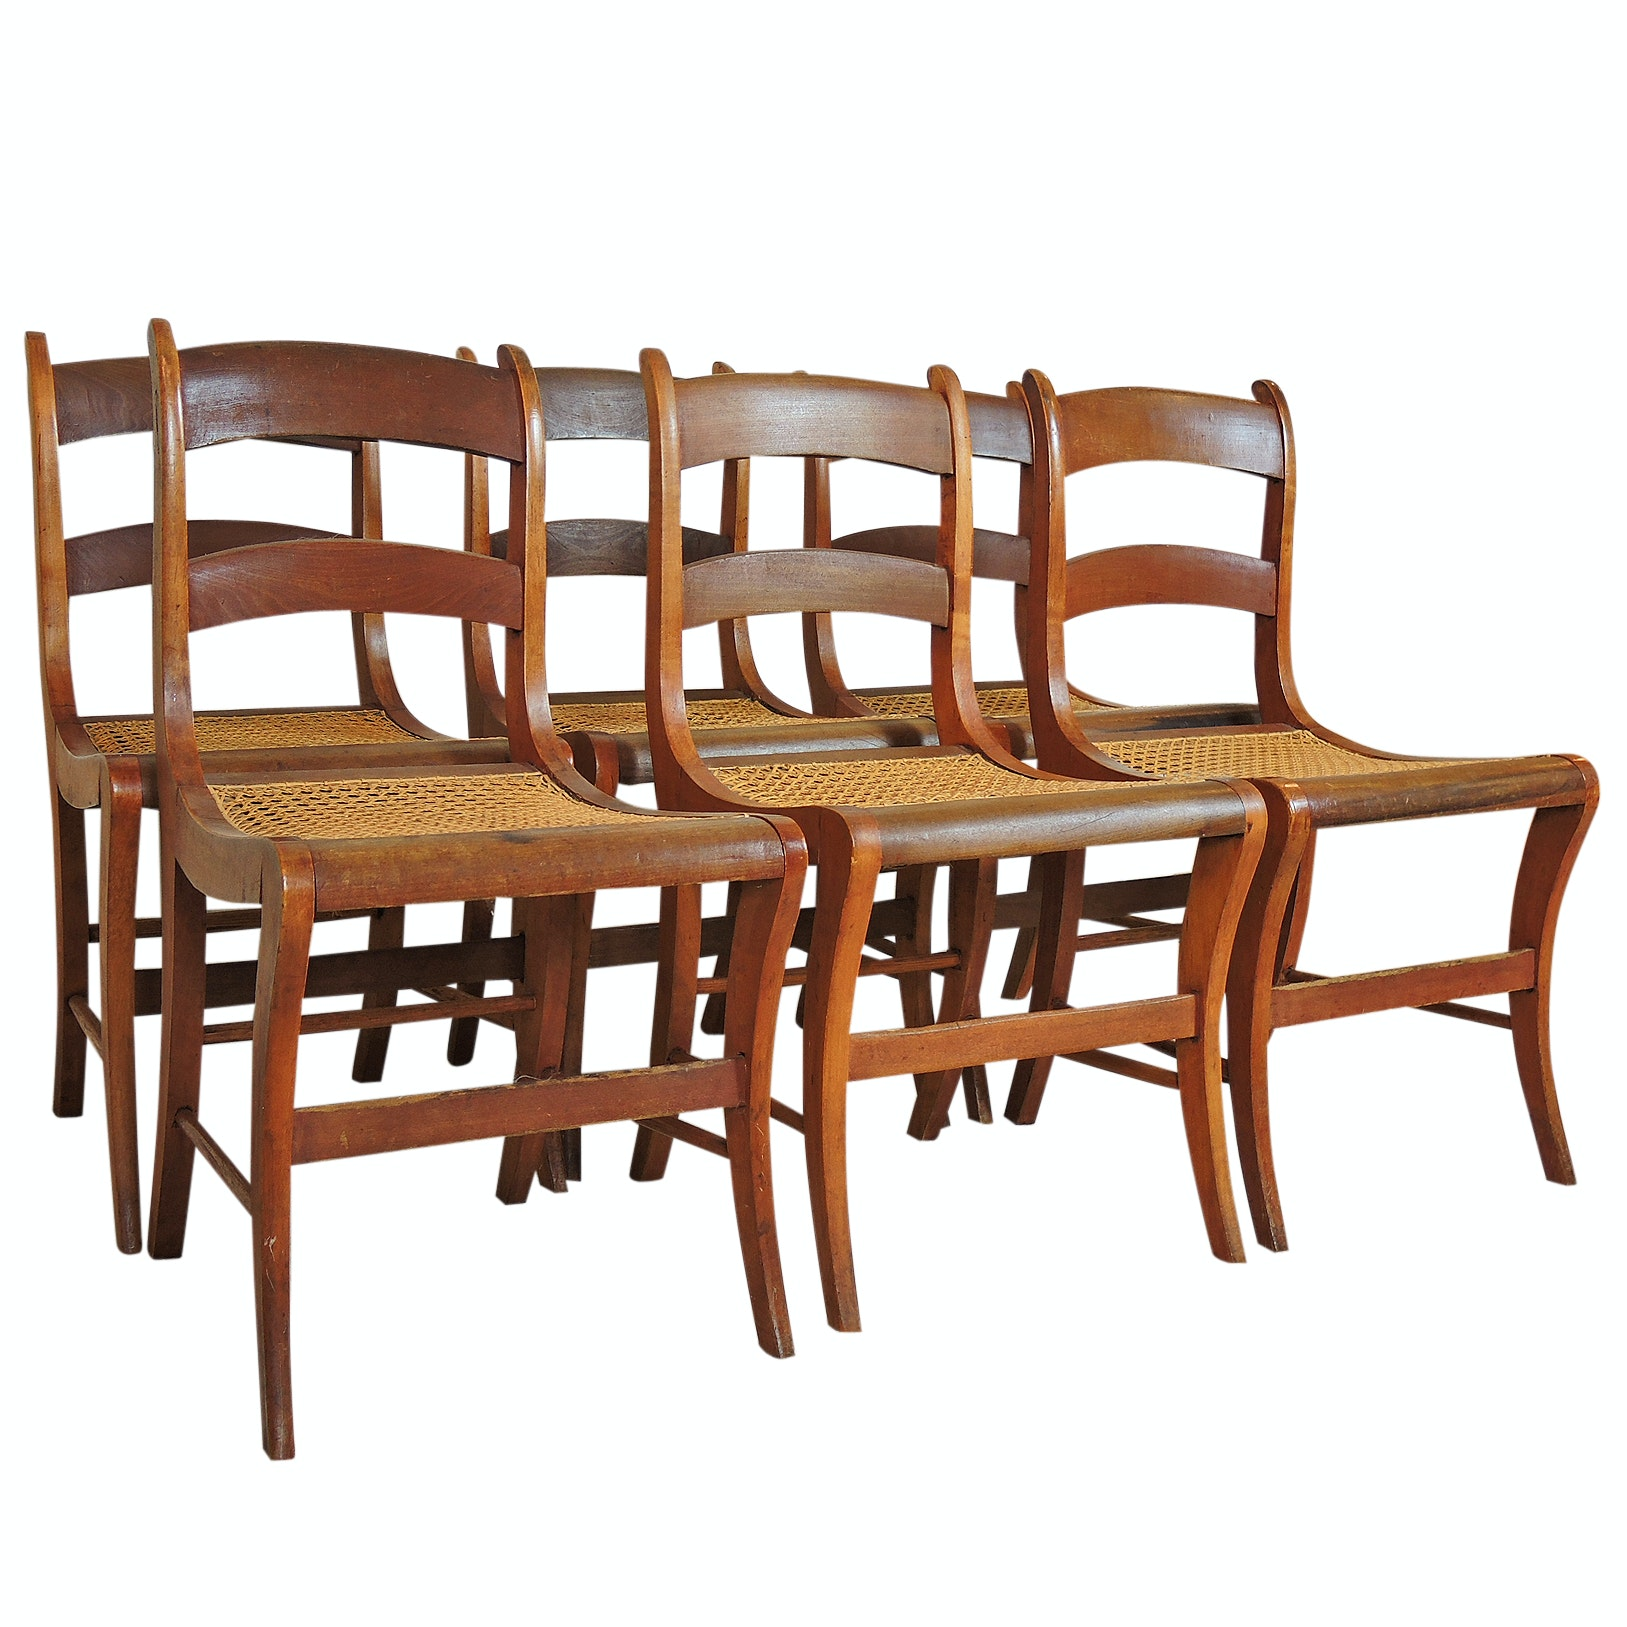 20th Century Regency Style Dining Chairs  Regency Style Furniture C77